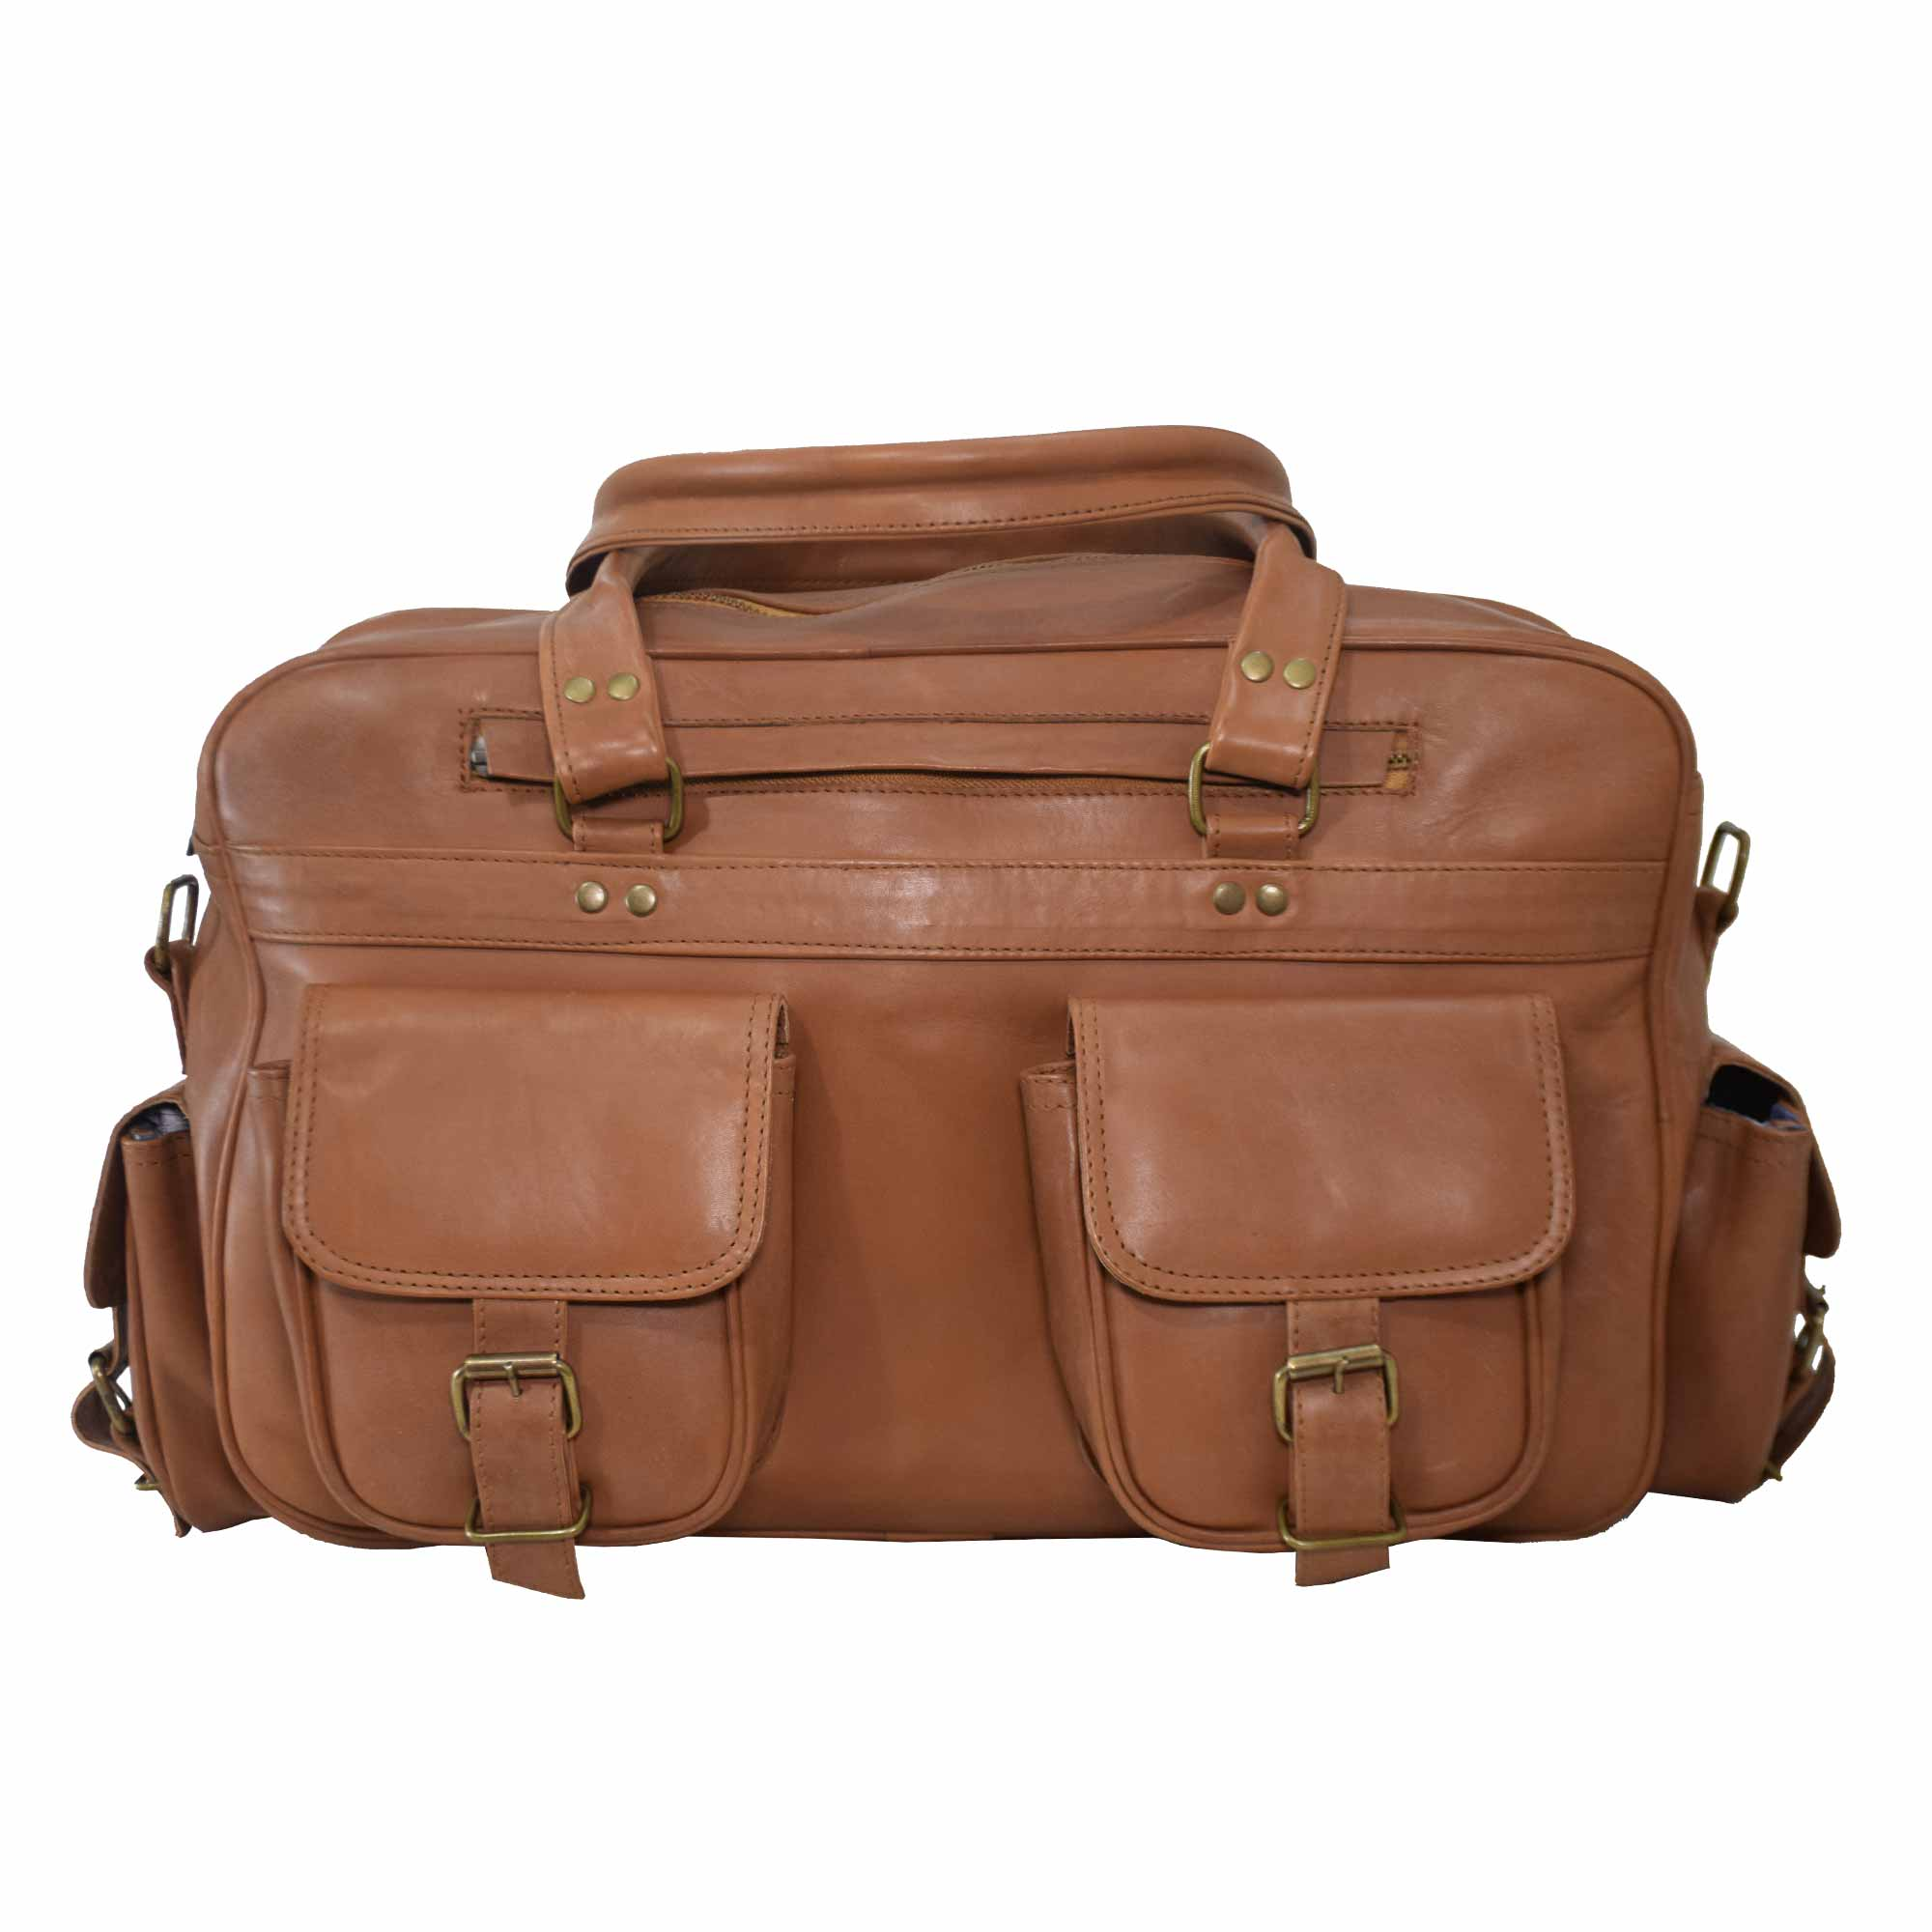 BROWN LAPTOP / MESSENGER BAG FOR 15 INCH + LAPTOPS